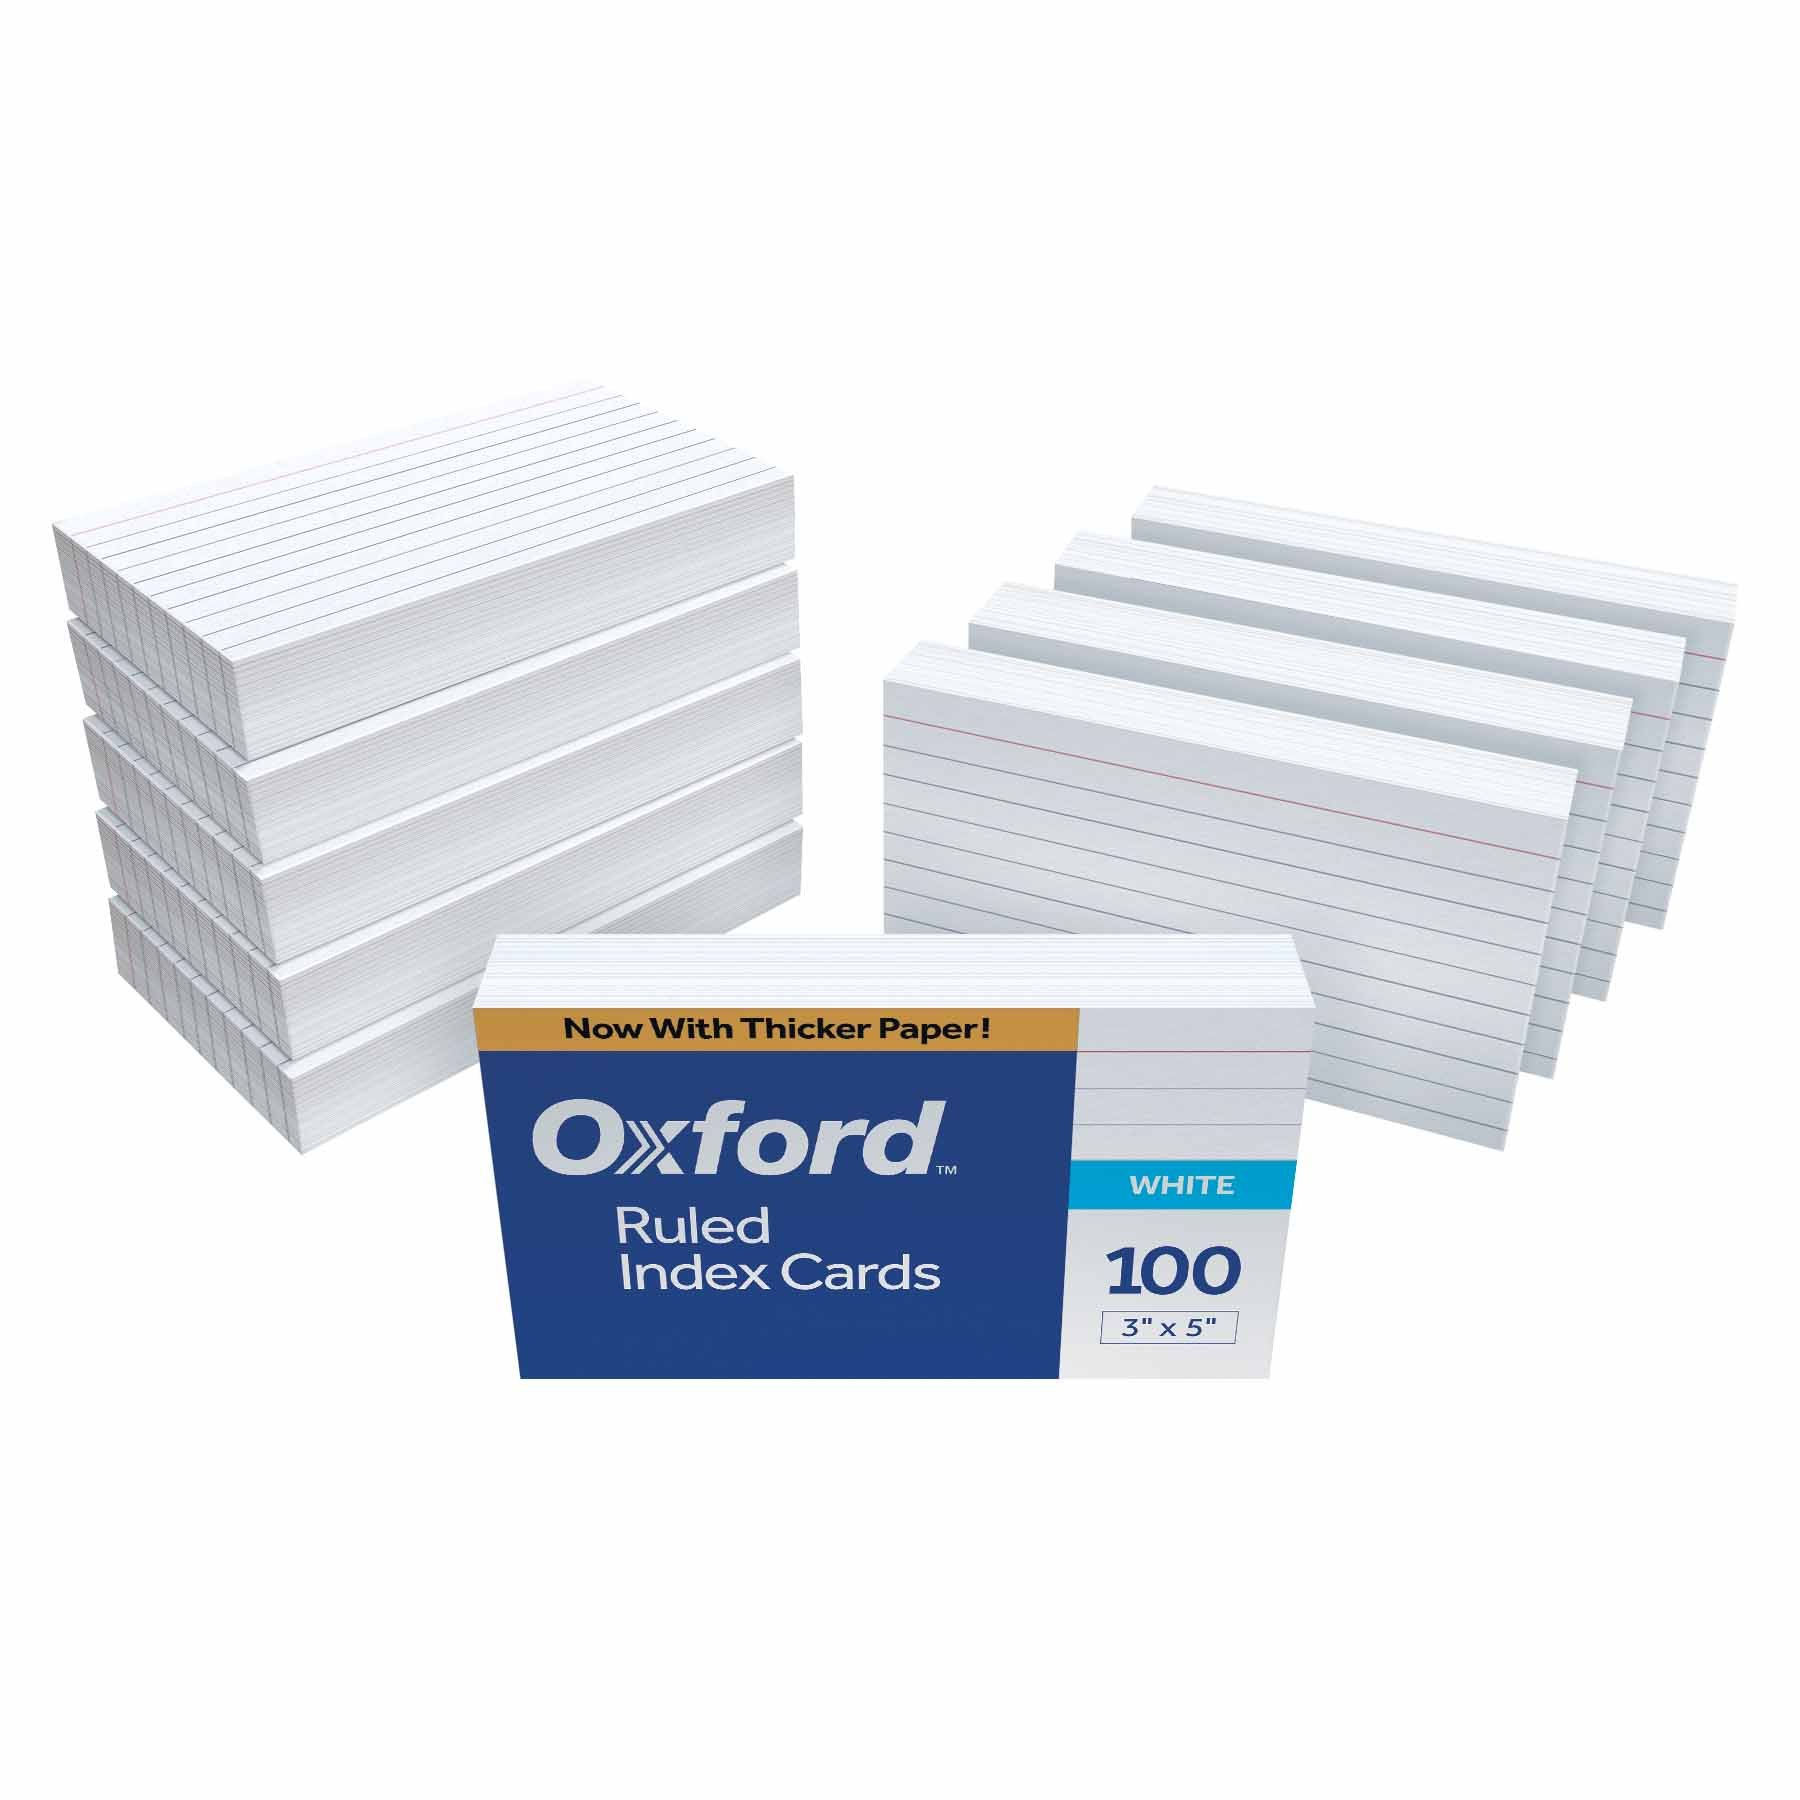 Oxford Ruled Index Cards, 3'' x 5'', White, 1,000 Cards (10 Packs of 100) (31)